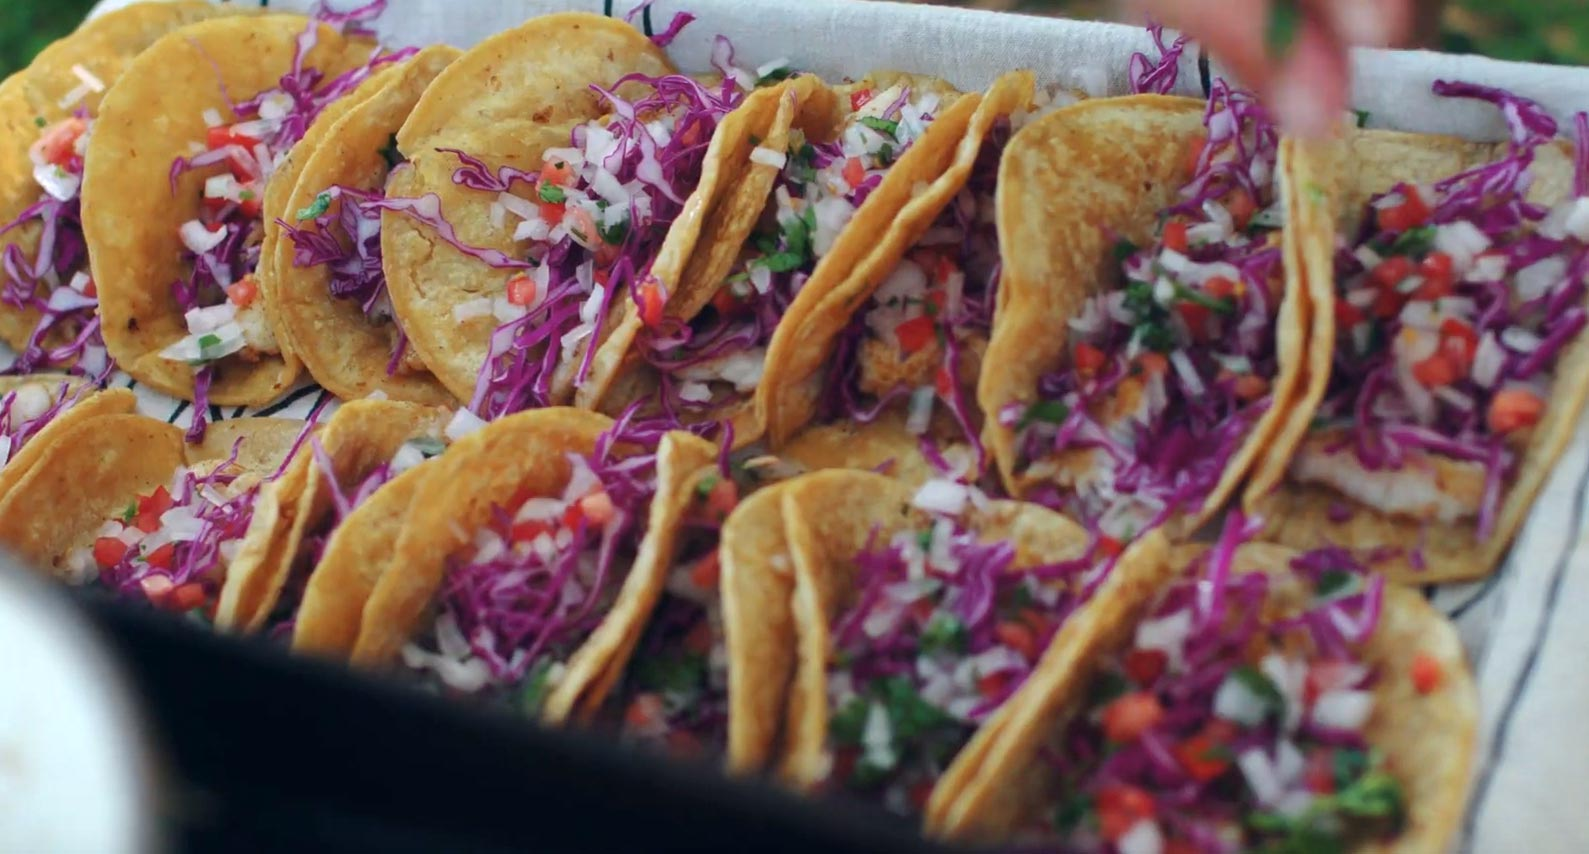 Getting hungry? Some delicious-looking lionfish tacos are served up!